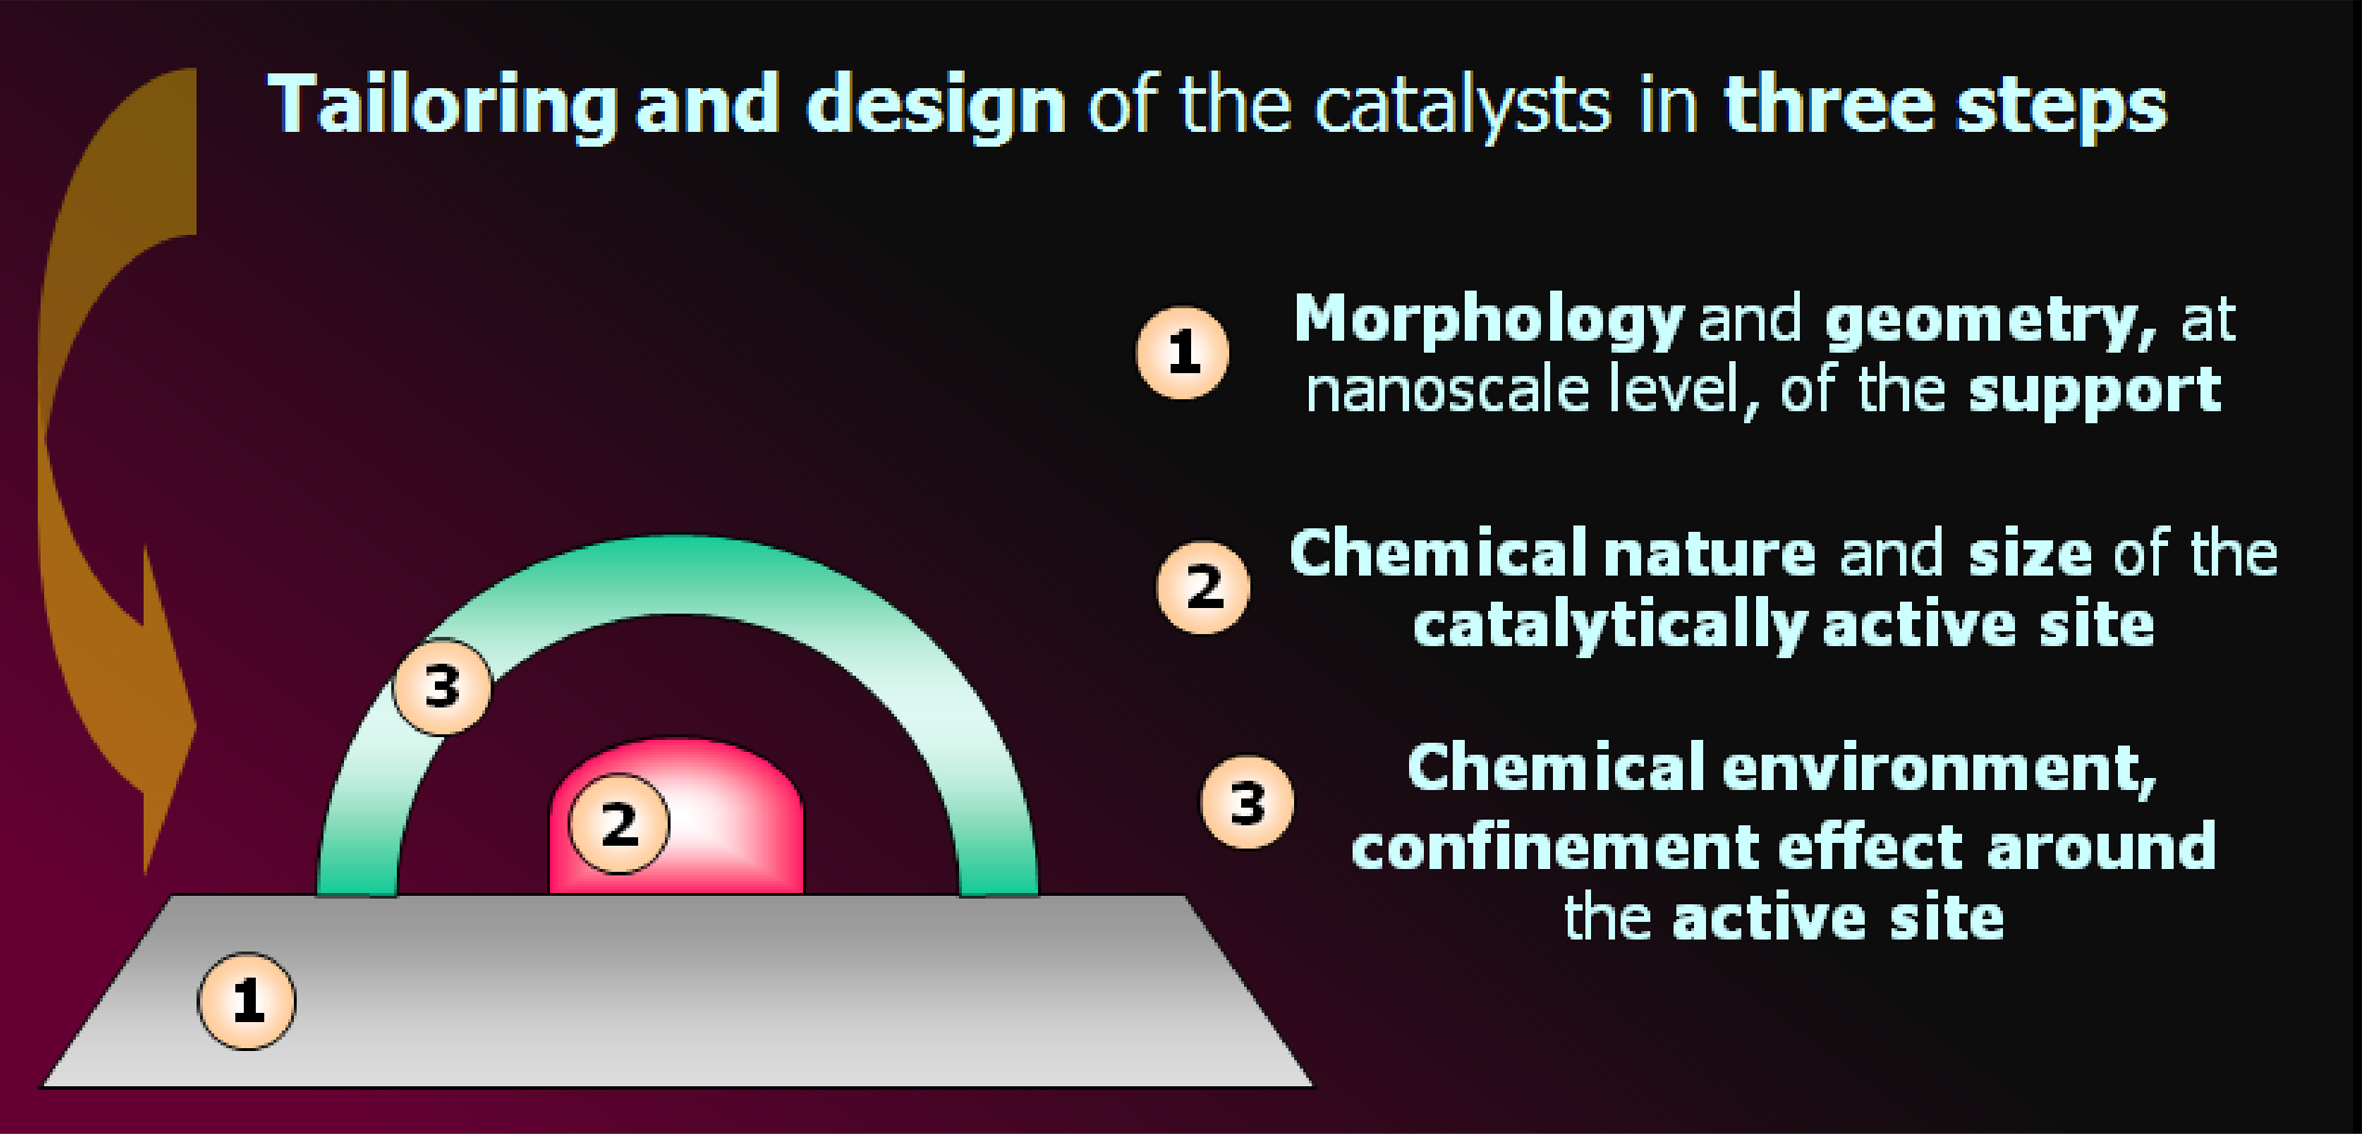 design-efficient-catalysts.jpg